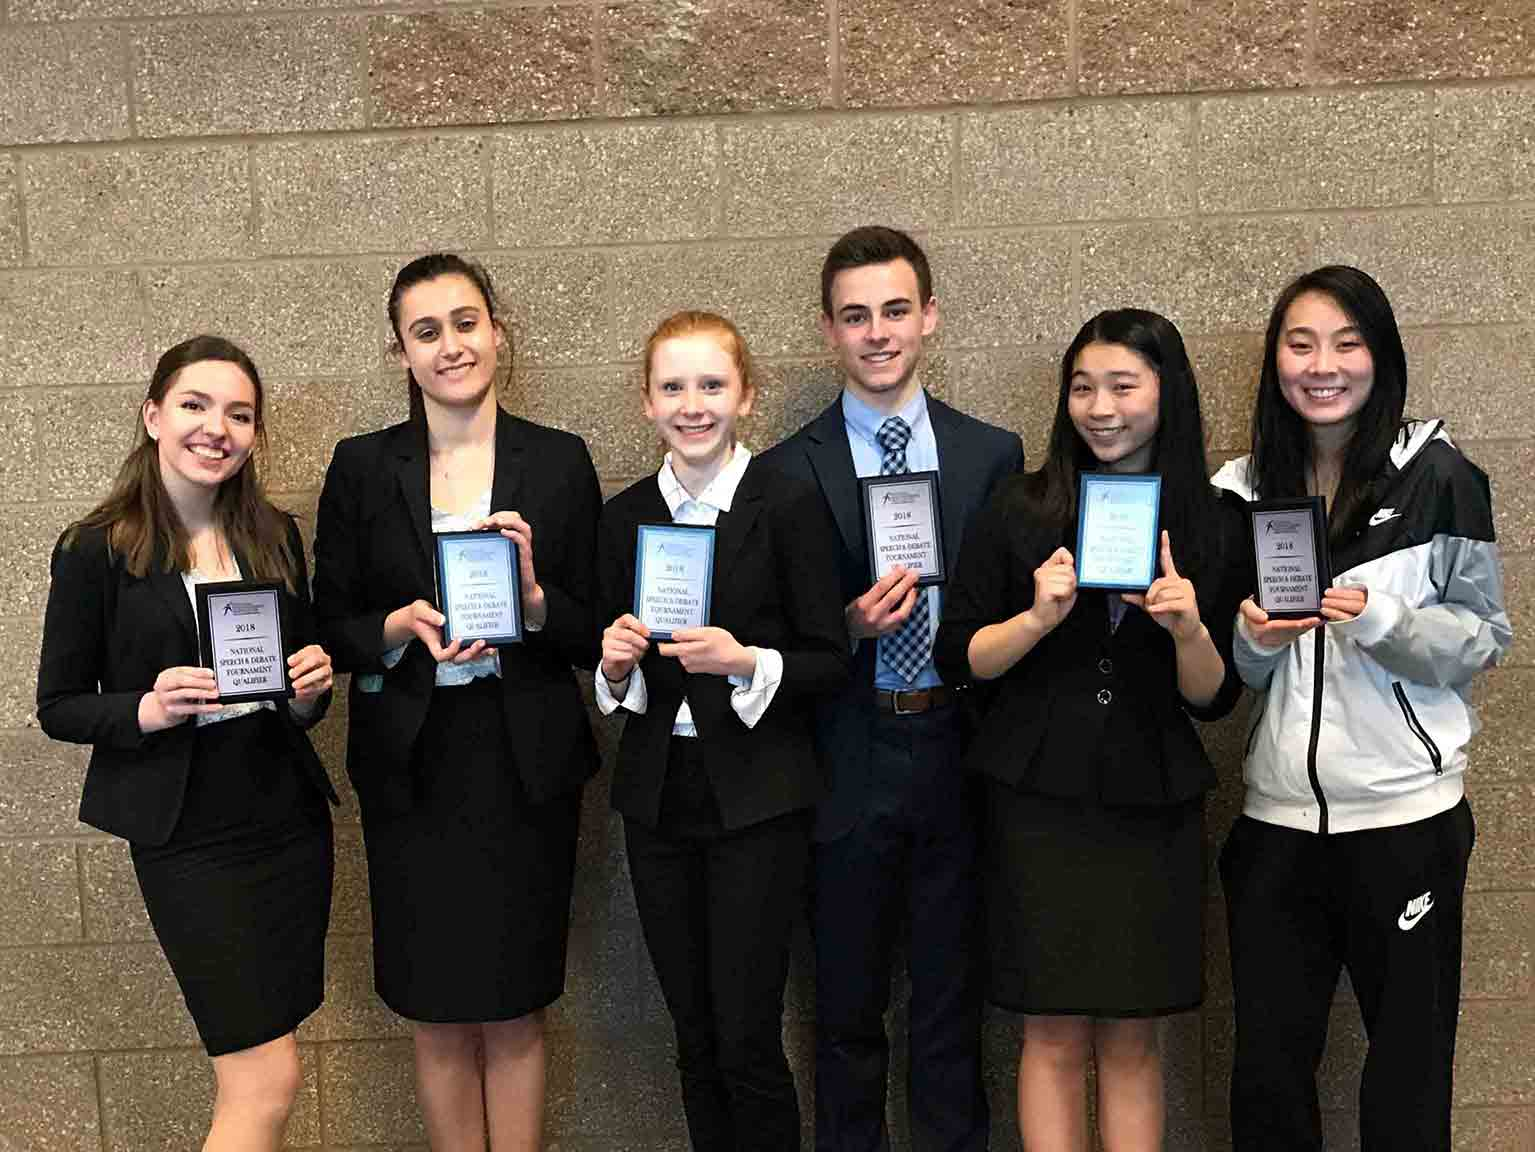 Bear Creek Forensics Team District Champions and National Qualifiers